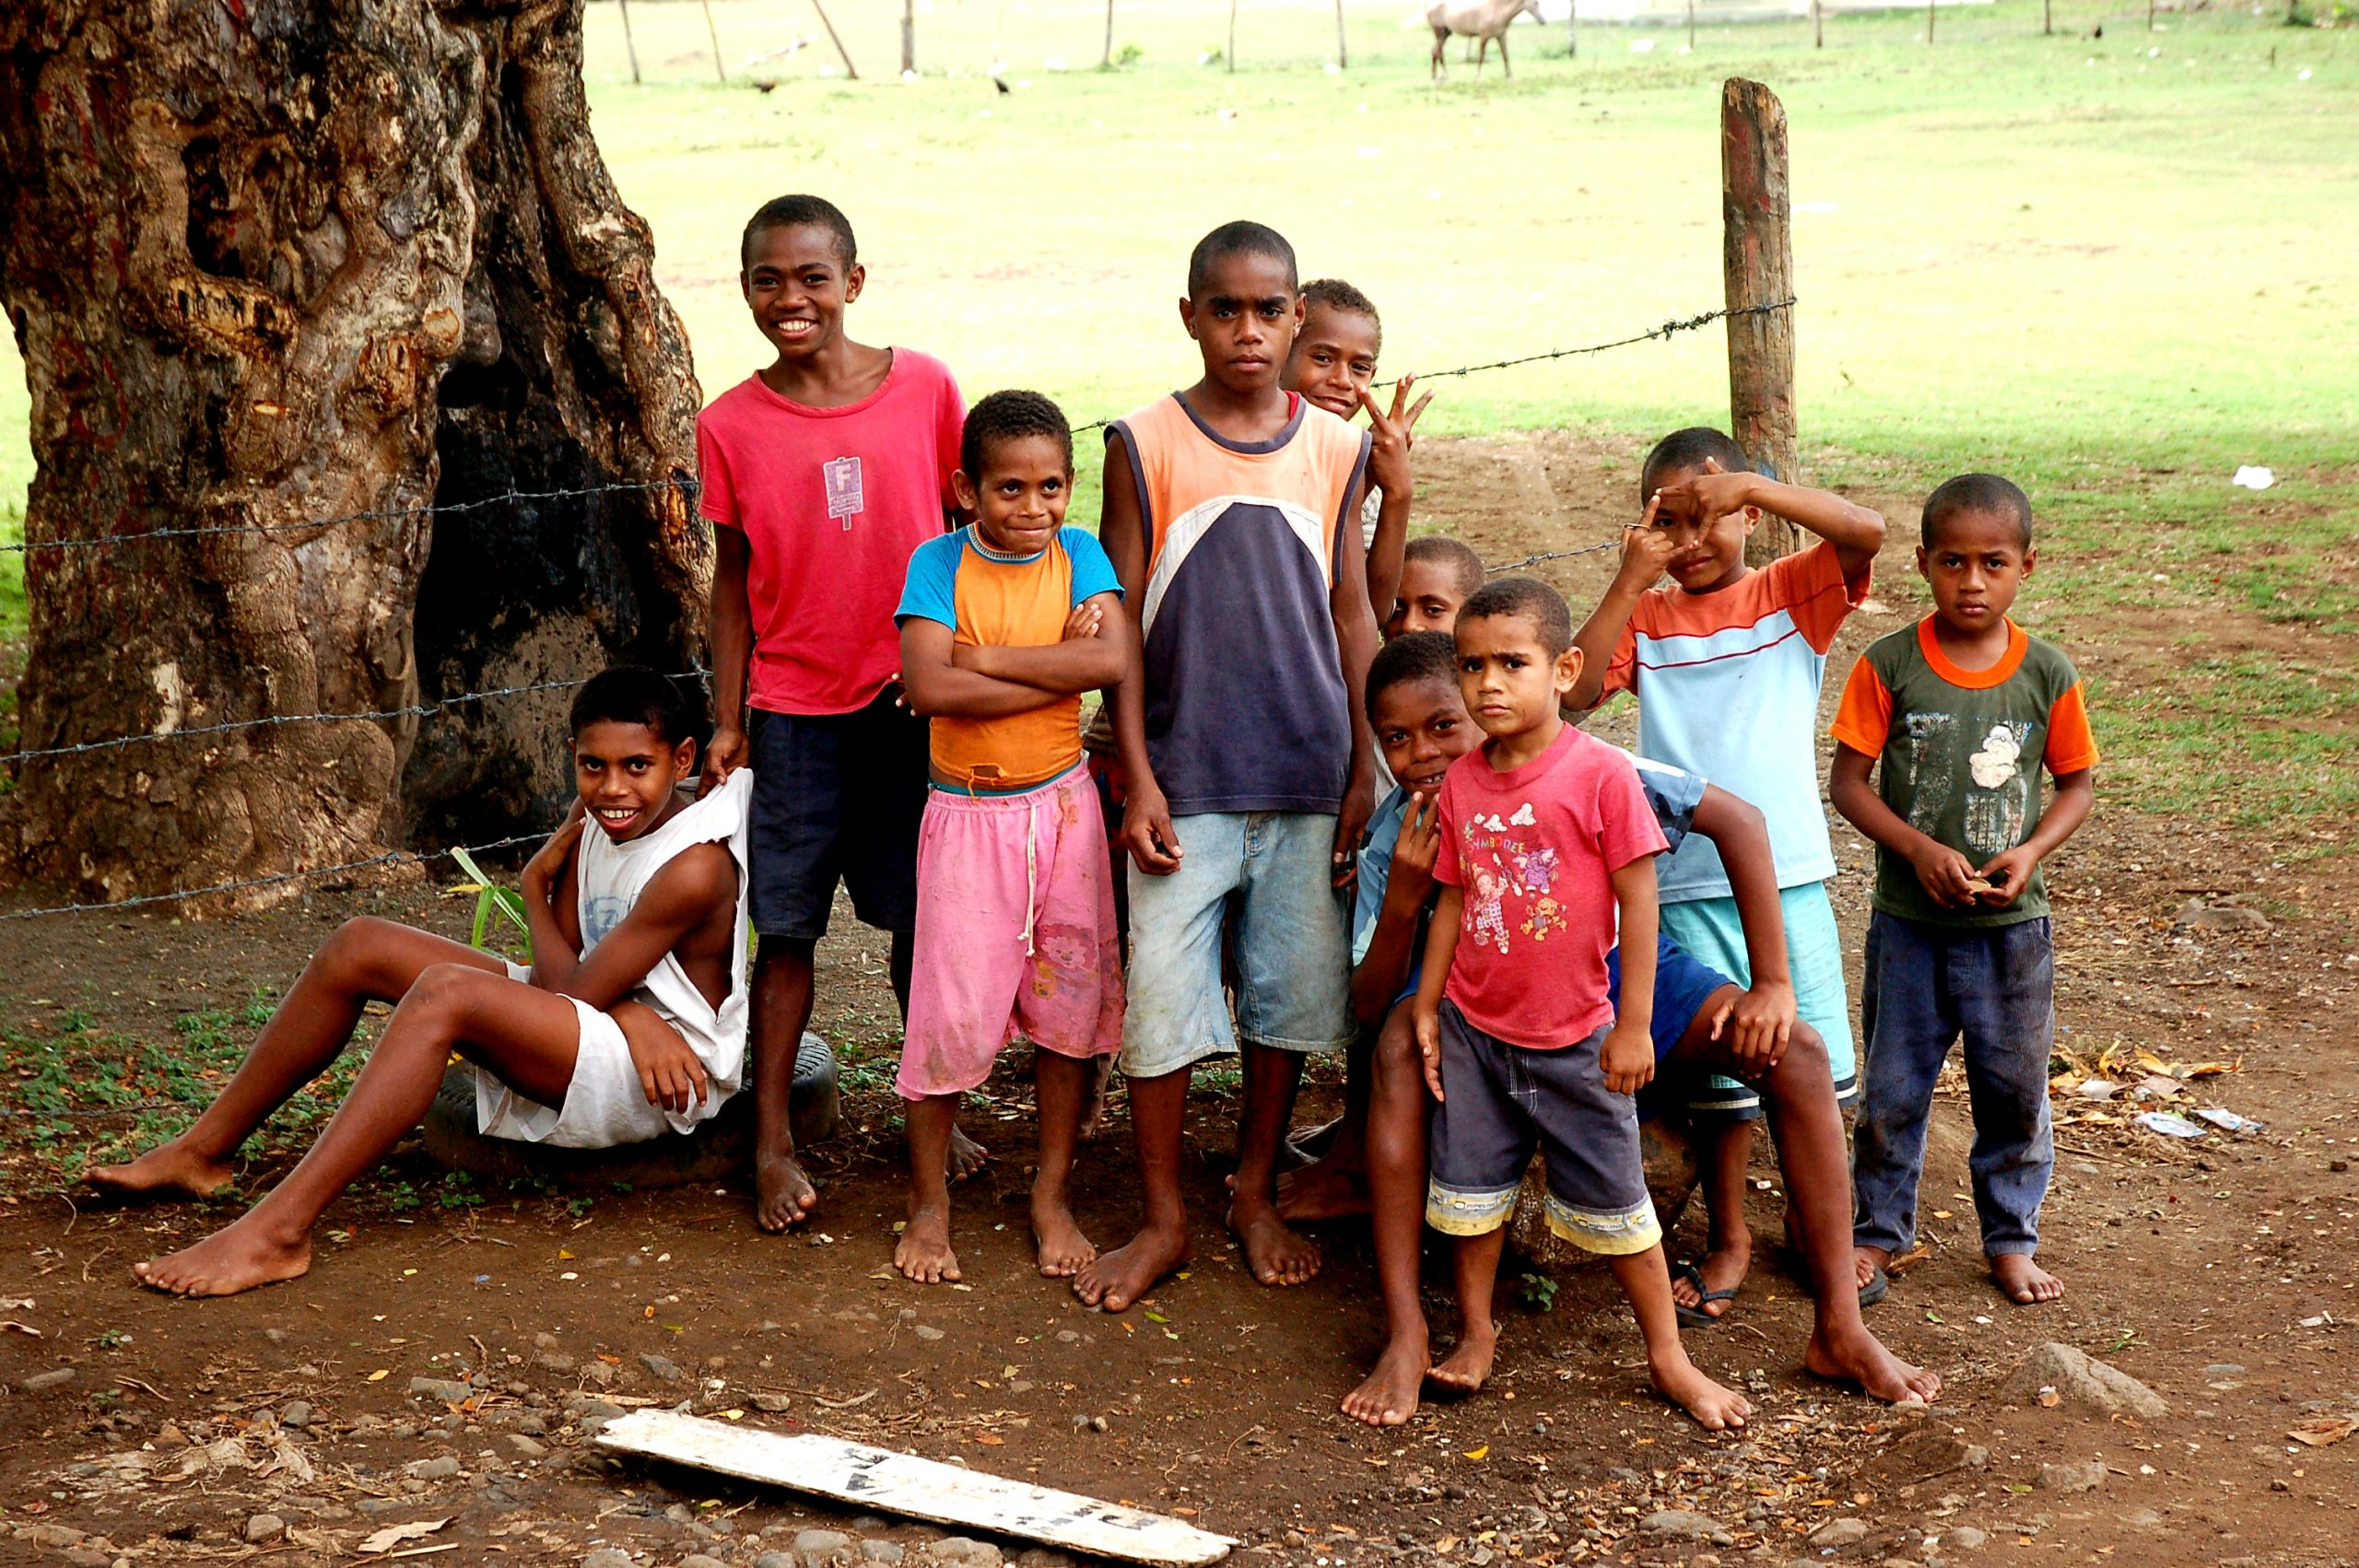 6 examples of a multi-stakeholder approach to ending child labour